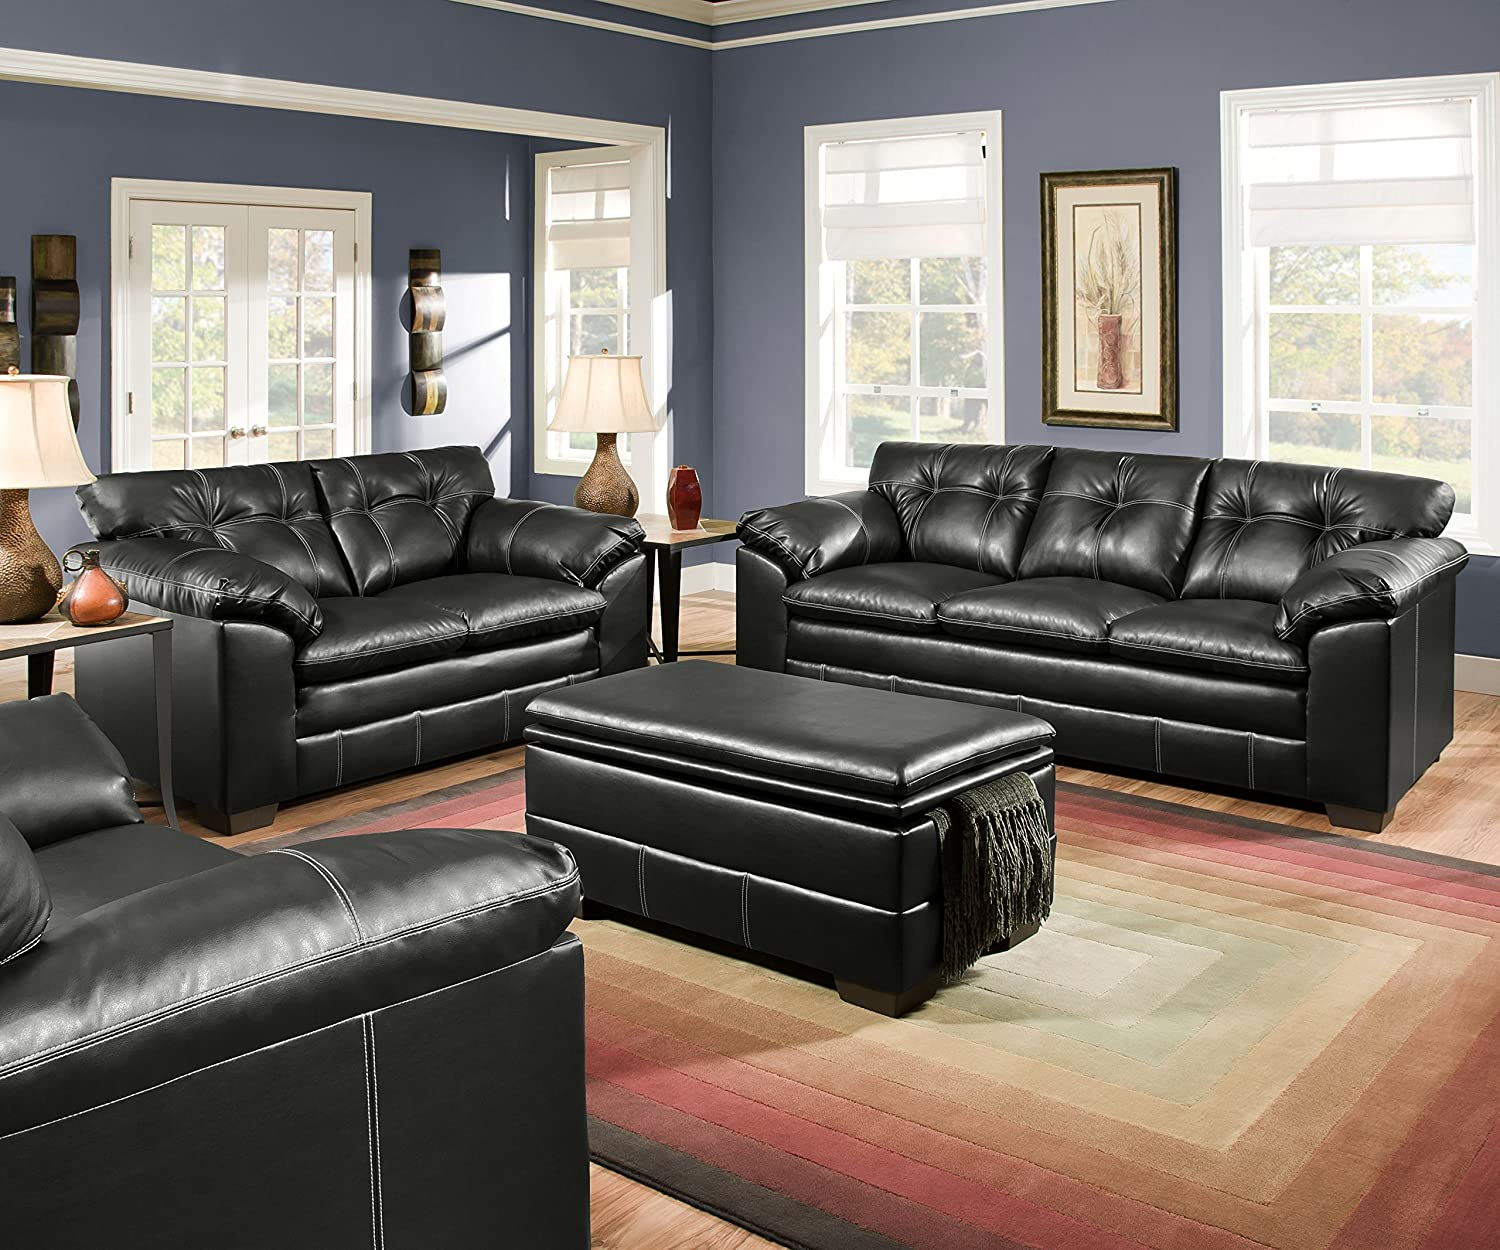 simmons living room furniture. Amazon.com: Simmons Upholstery 6769-095 Premier Onyx Bonded Leather Storage Ottoman: Kitchen \u0026 Dining Living Room Furniture O